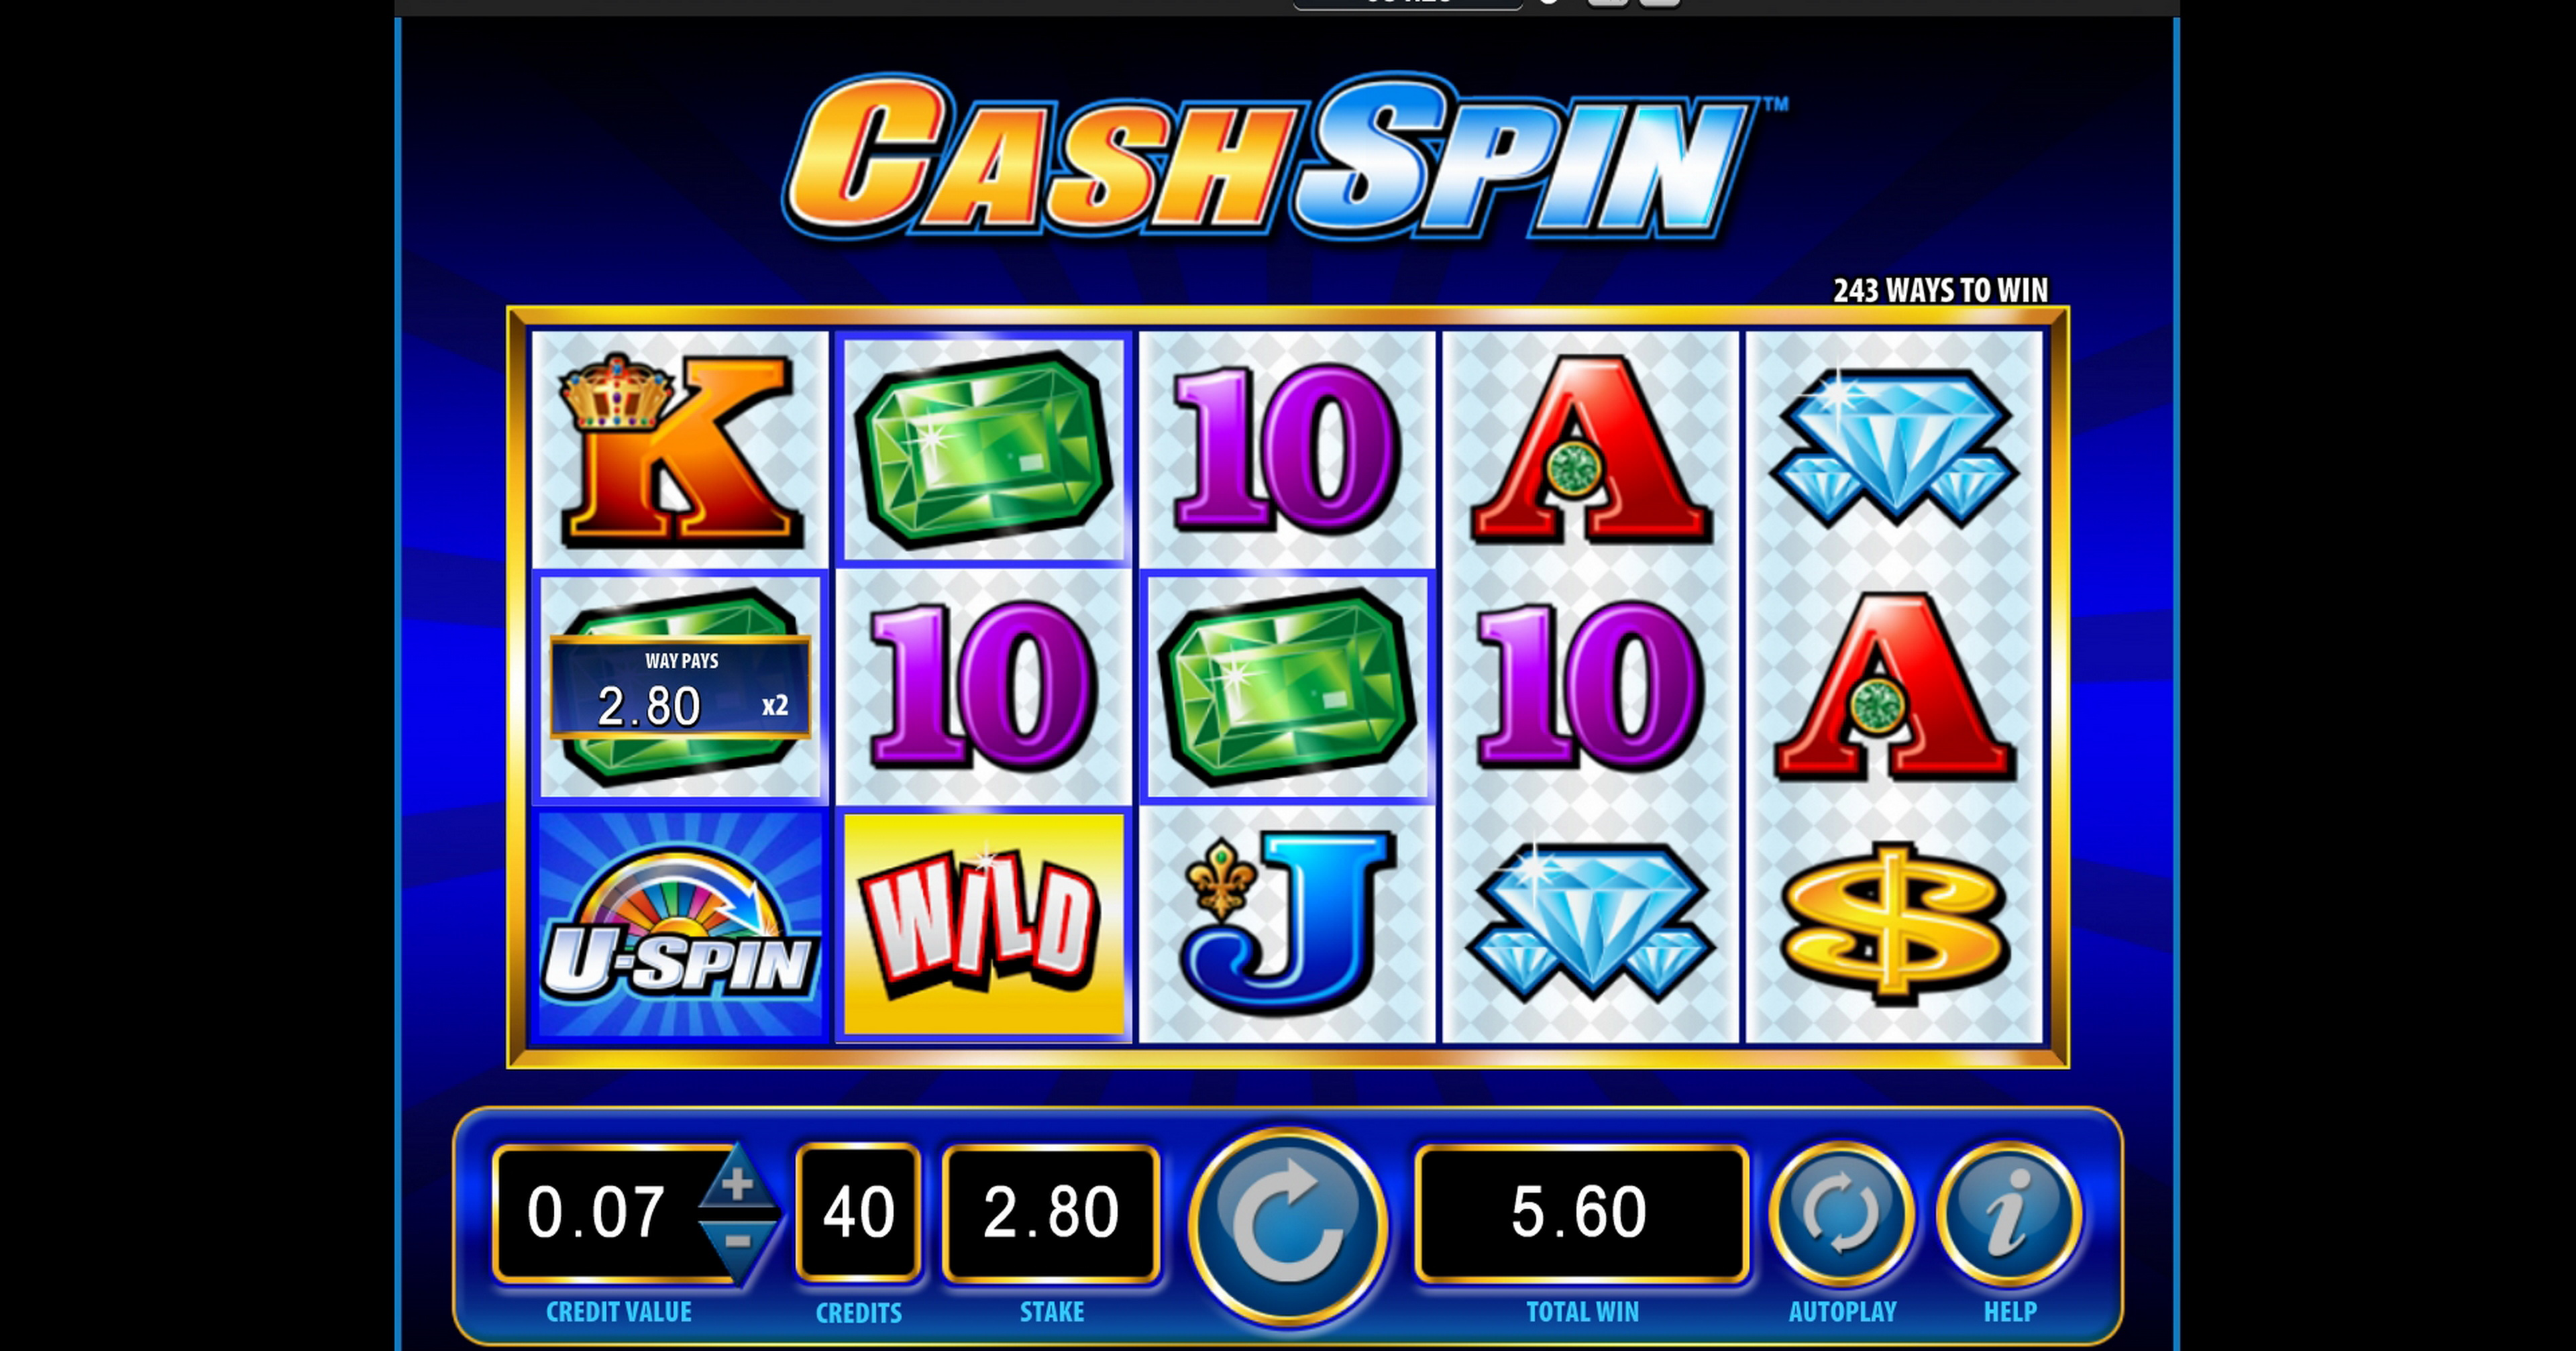 Win Money in Cash Spin Free Slot Game by Bally